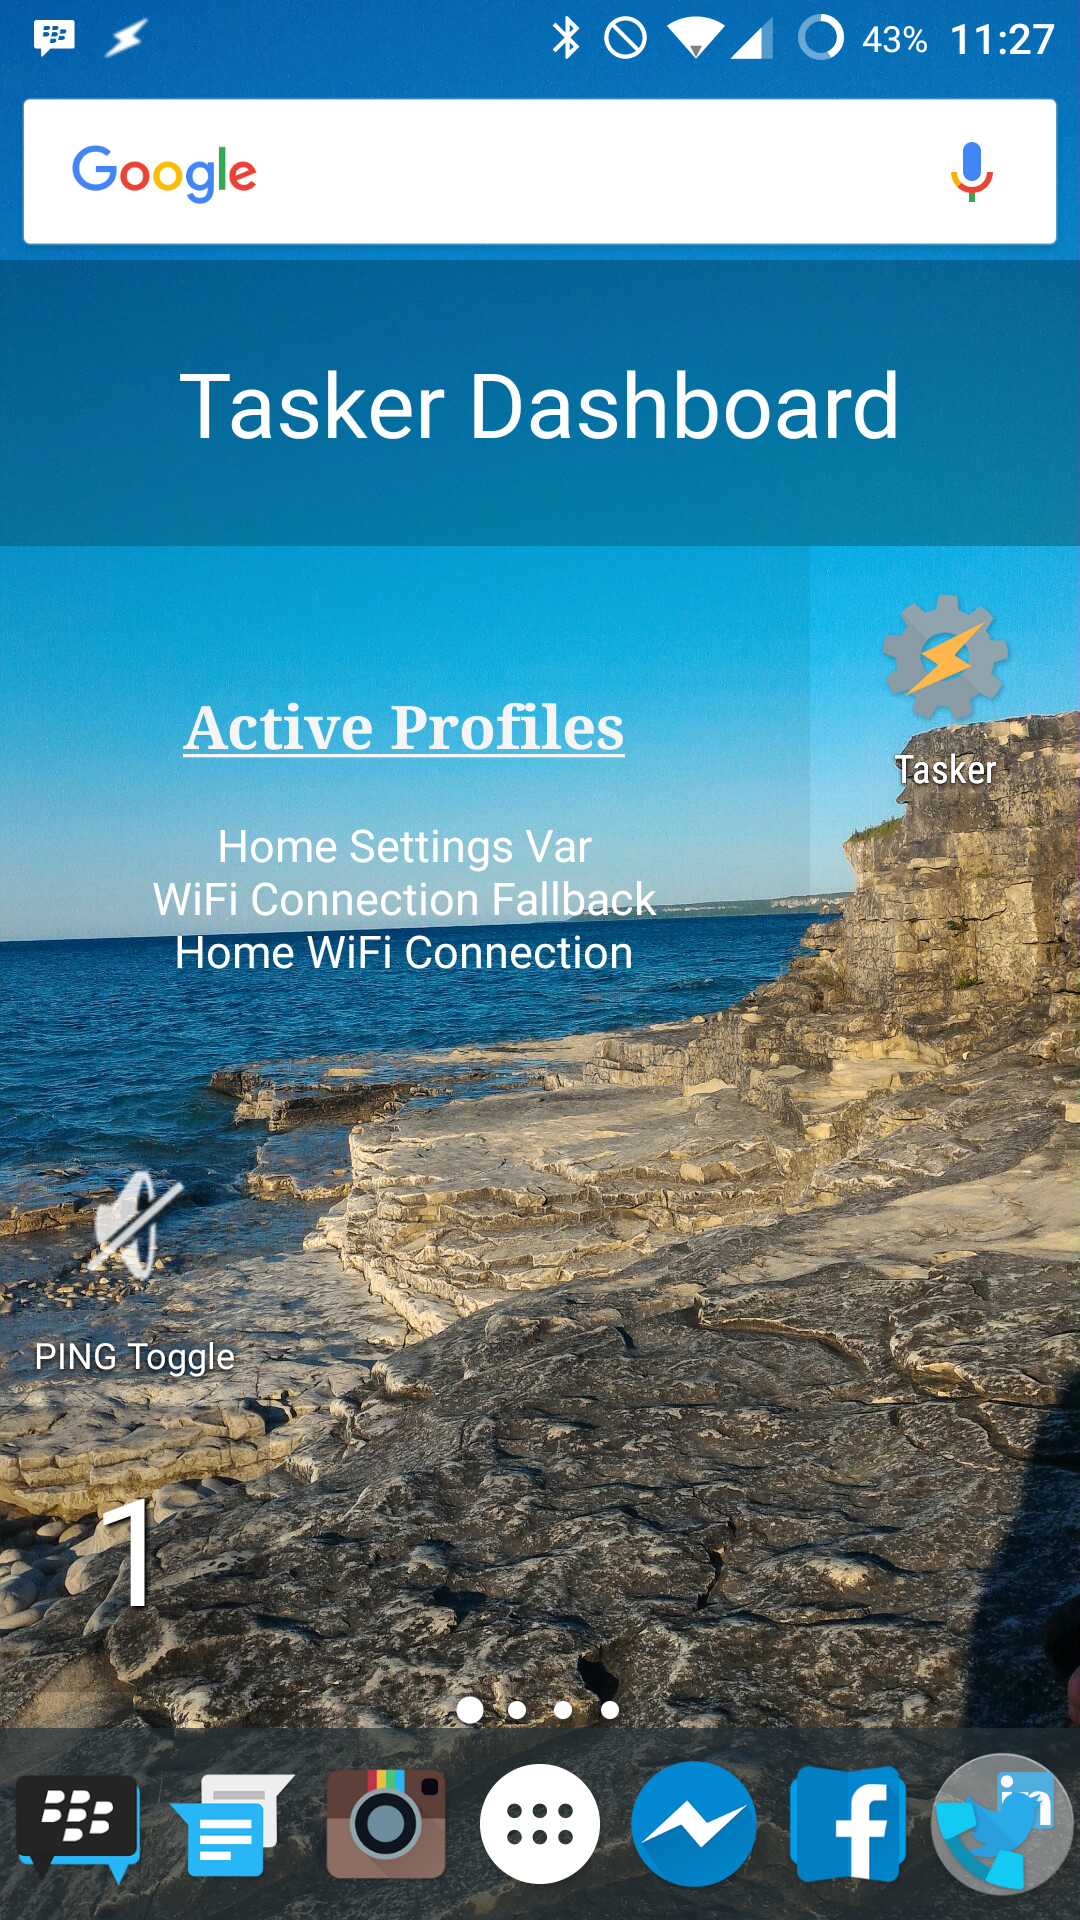 Tasker: displaying Active Profiles one per line in a